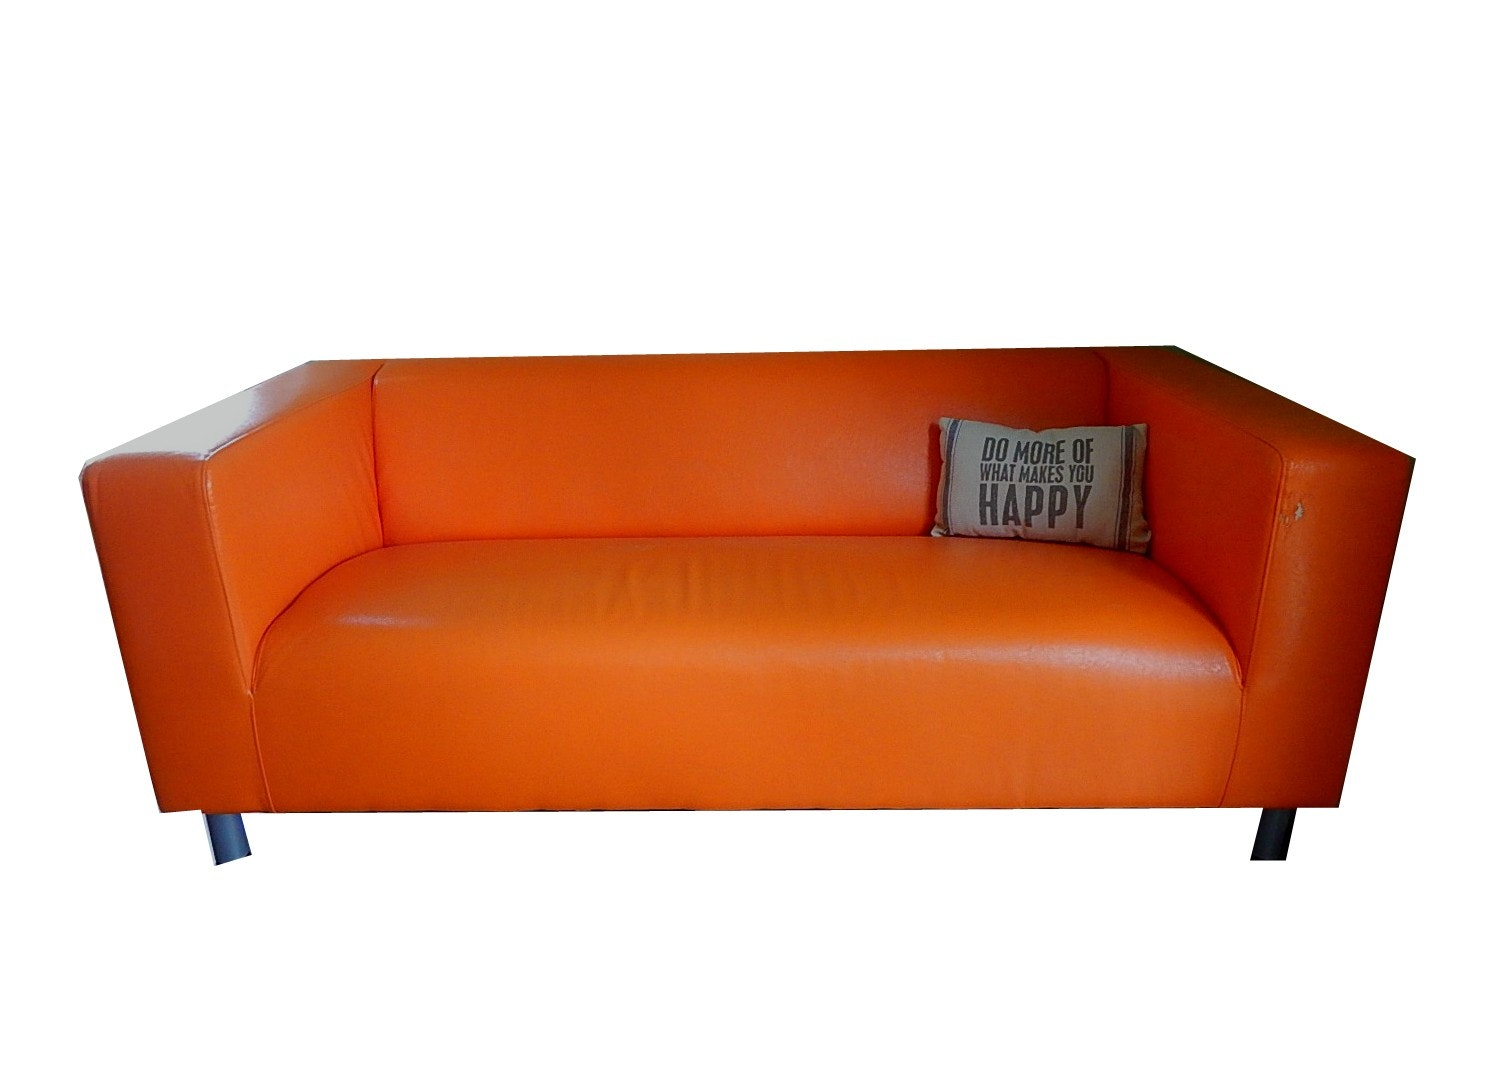 ikea klippan orange sofa with pillow ebth rh ebth com ikea friheten sofa orange ikea orange sofa cover